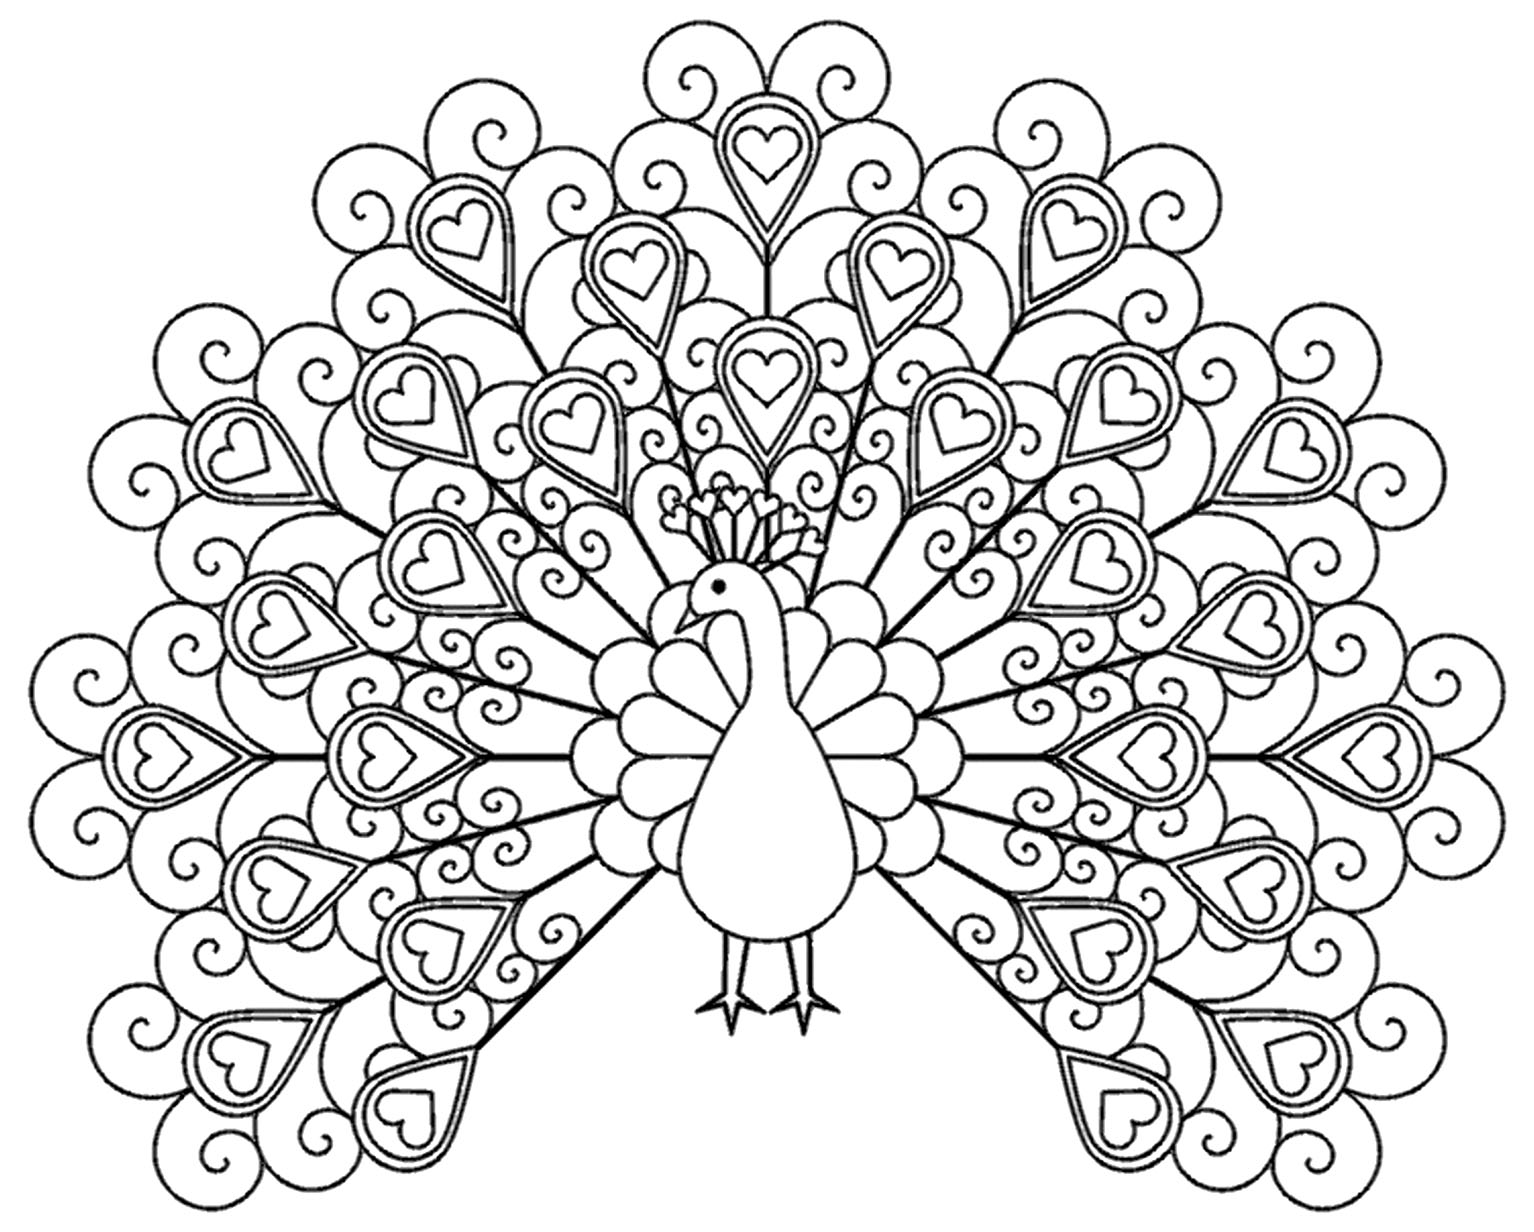 peacock pictures for colouring peacock coloring pages for kids sketch coloring page for peacock colouring pictures